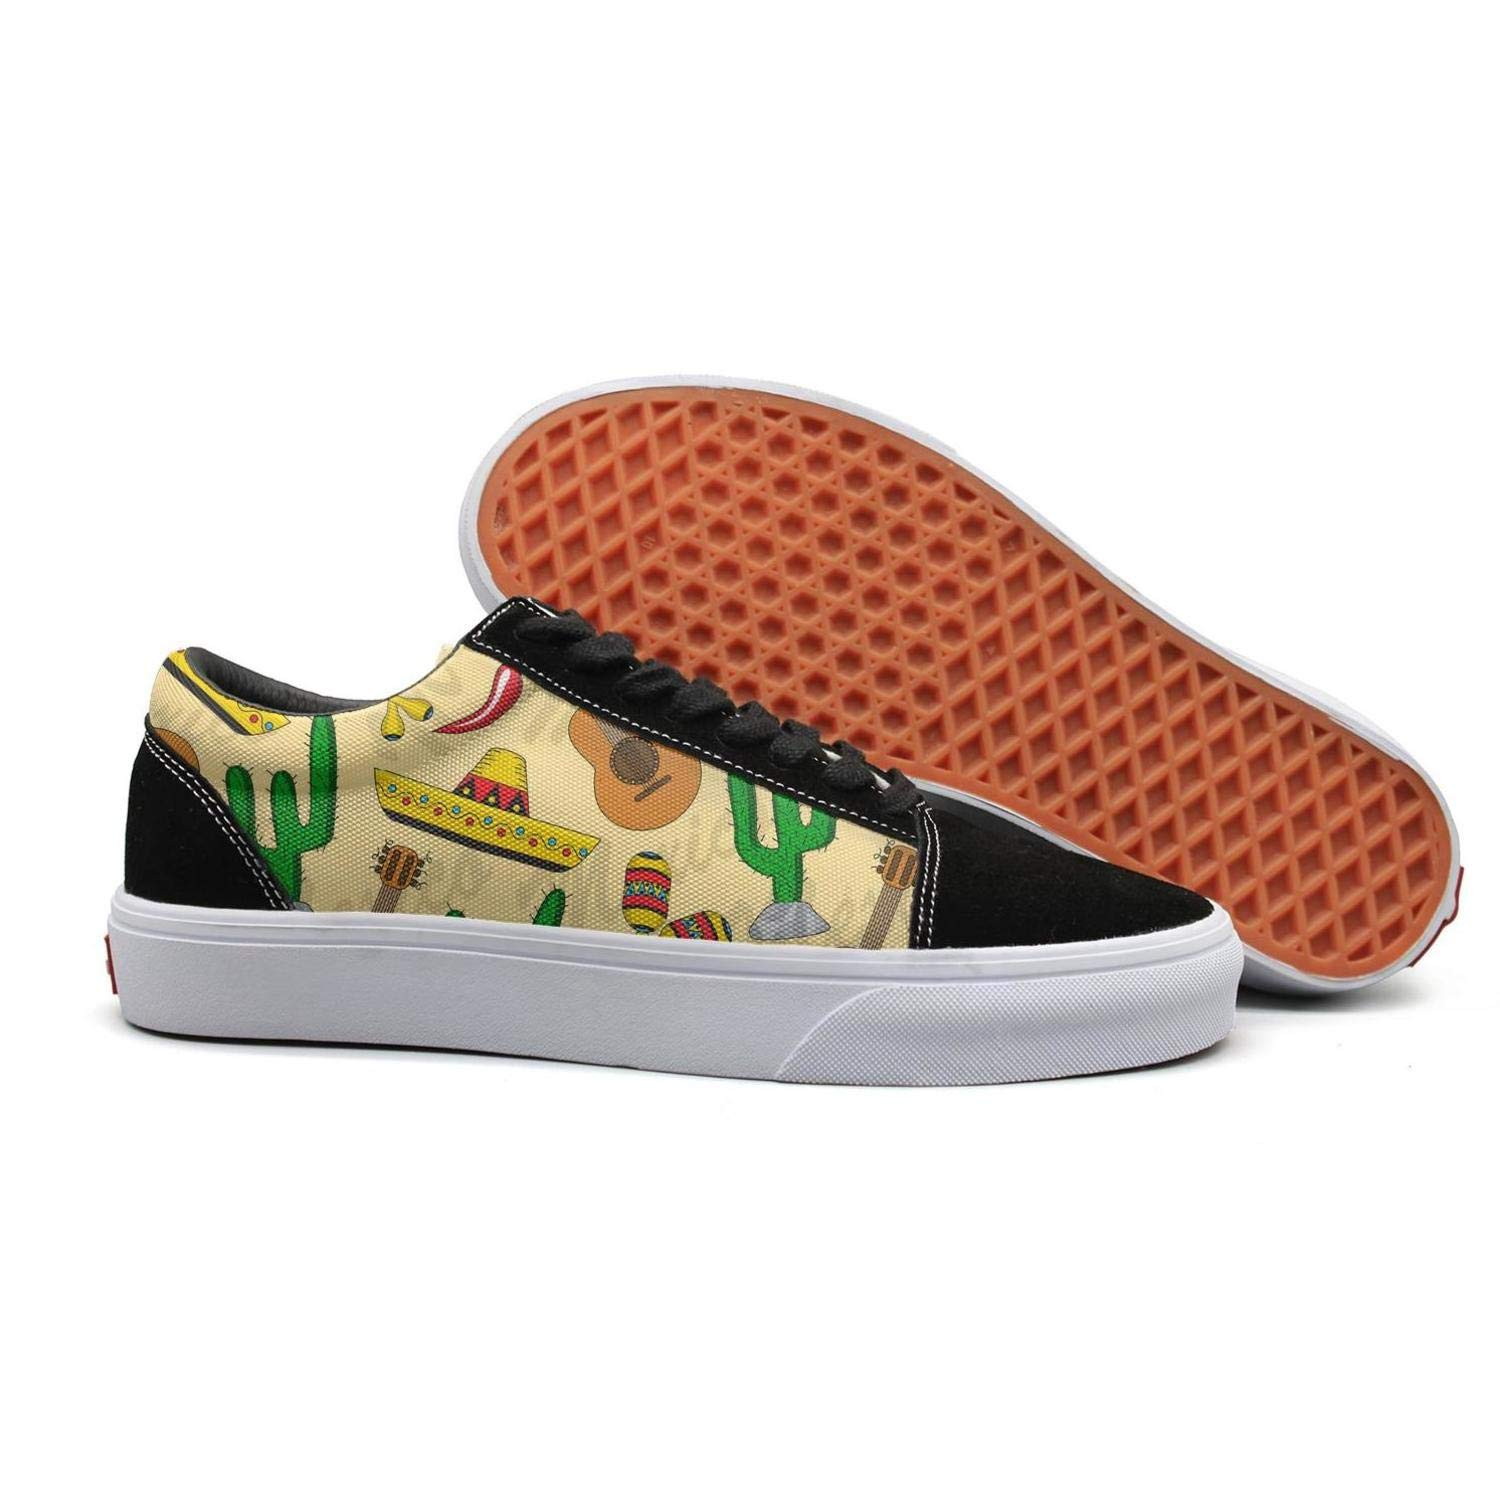 Mexica Cactus and Yellow Mini Guitar Lace Up Loafers Canvas Skate Shoes for Women Casual by Toxeu